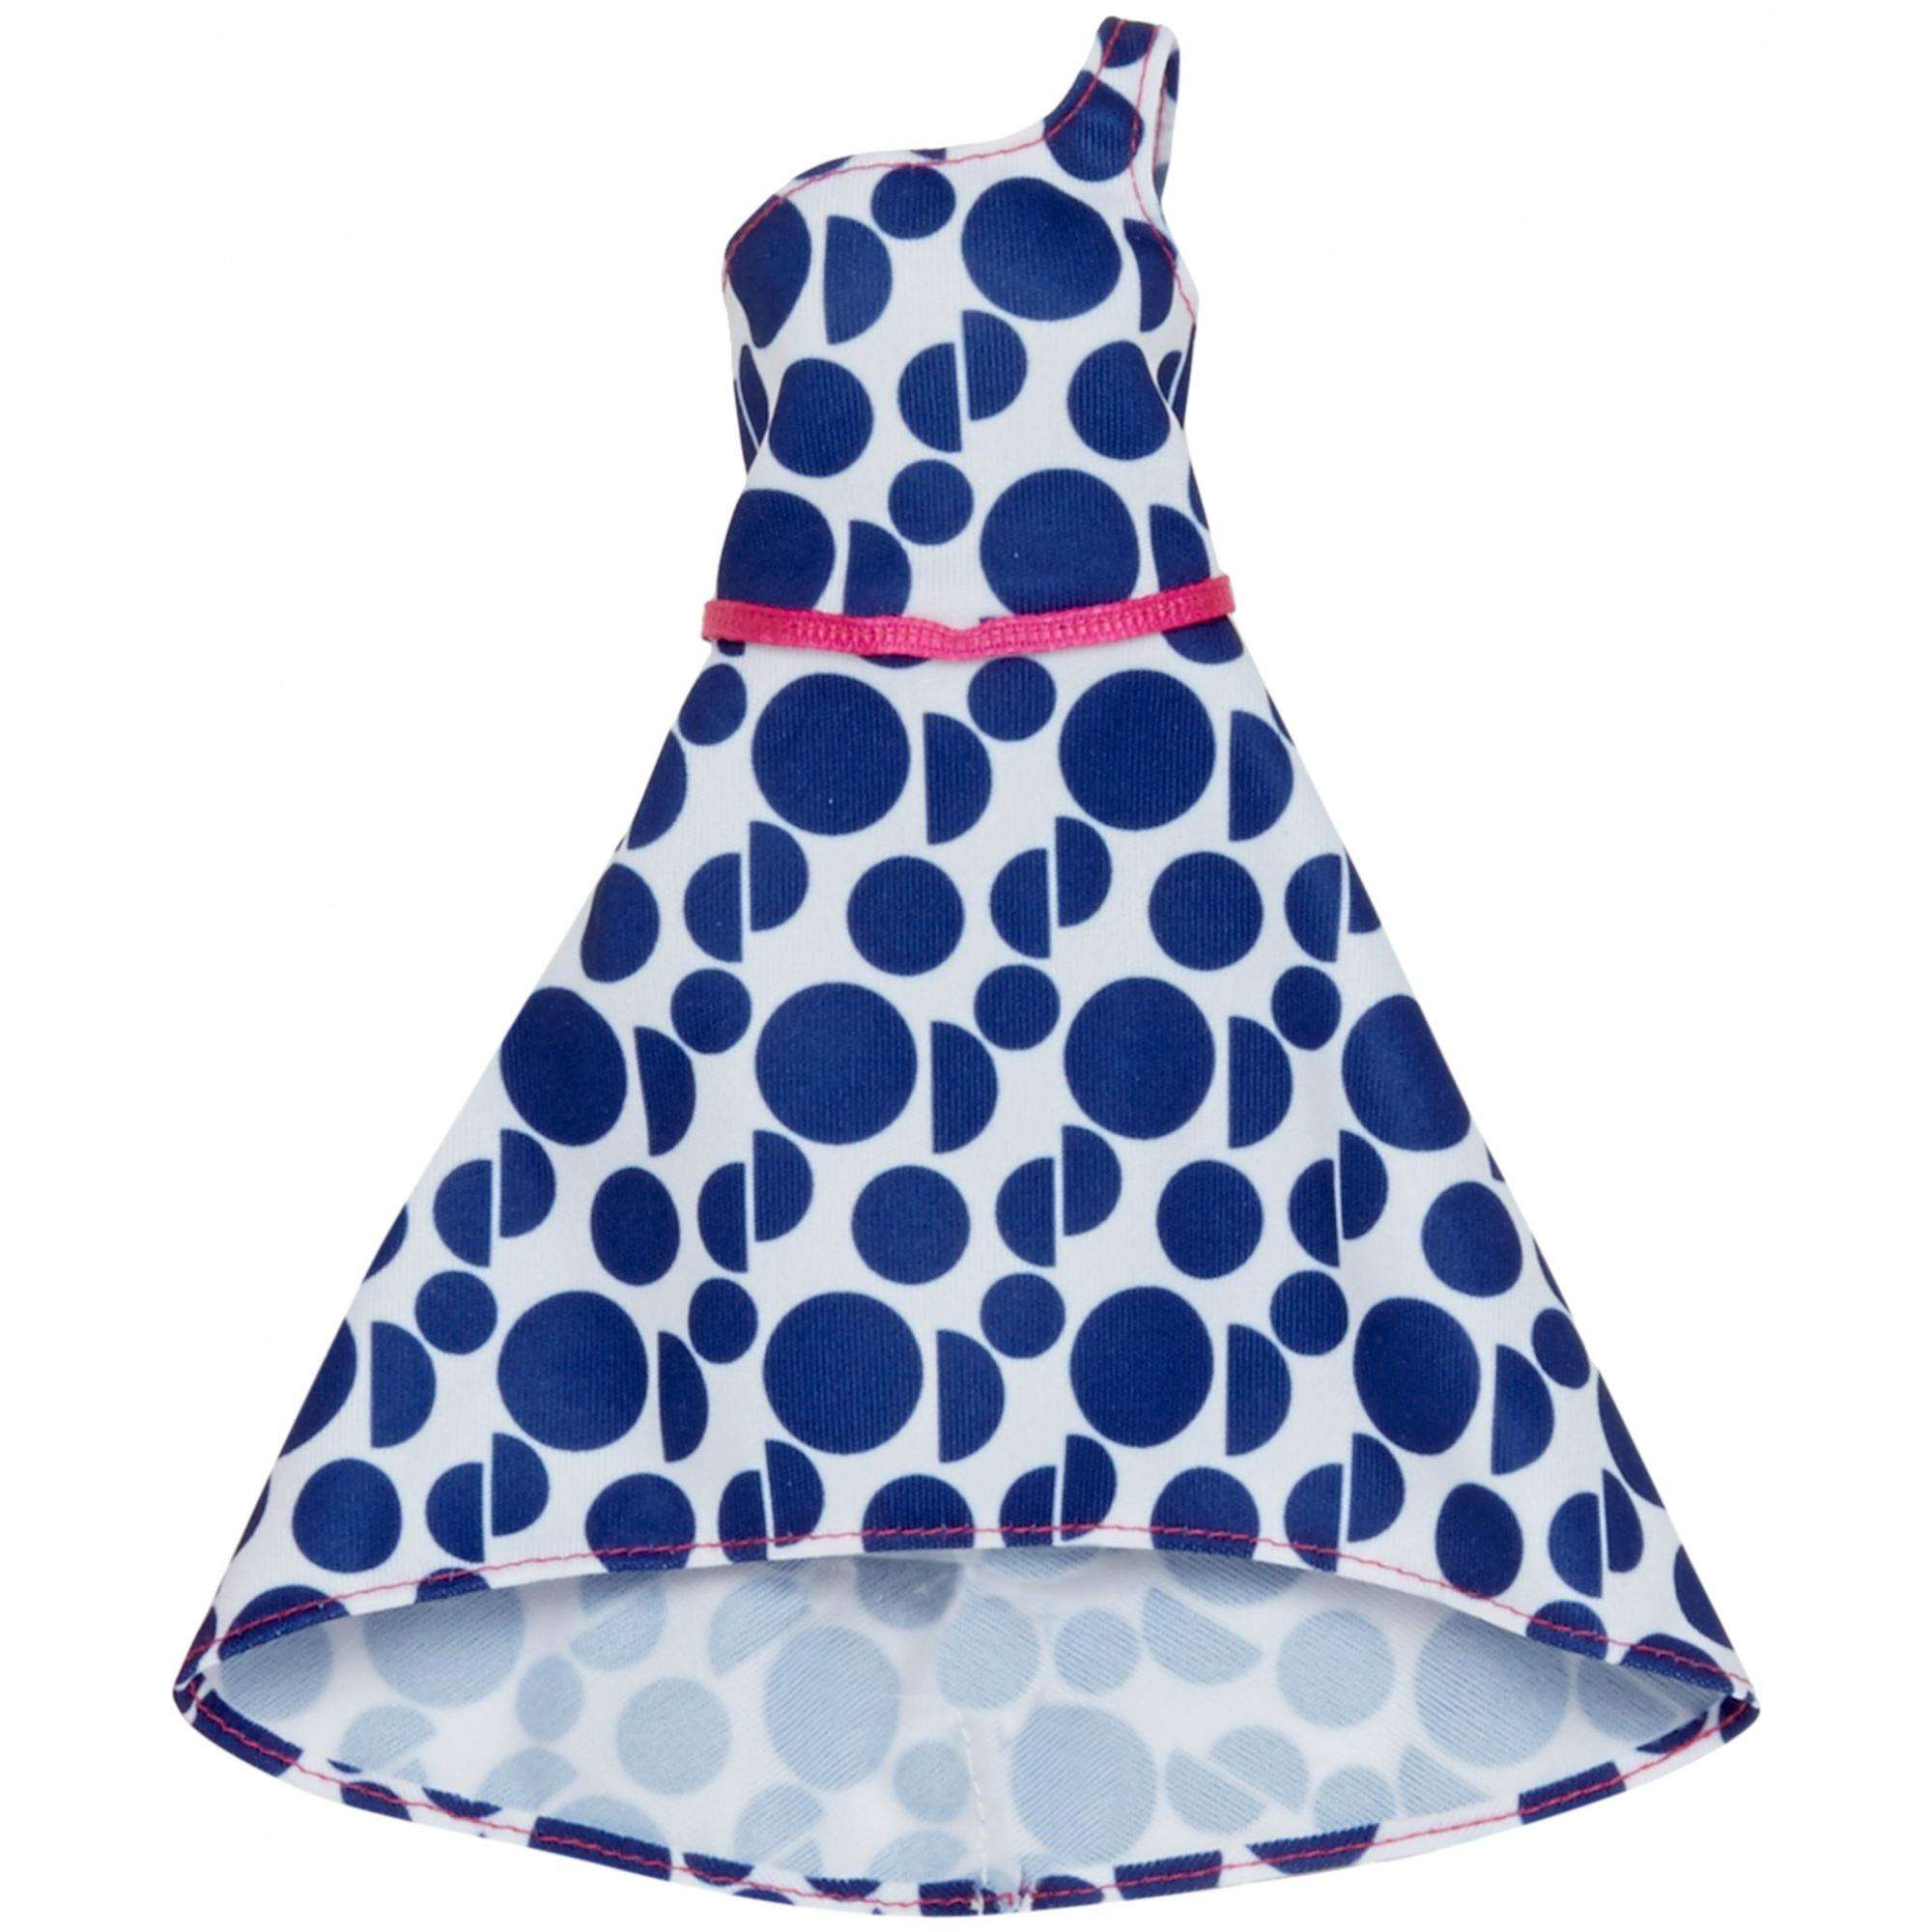 Barbie Trendy Blue Polka Dot Fashion Dress 11